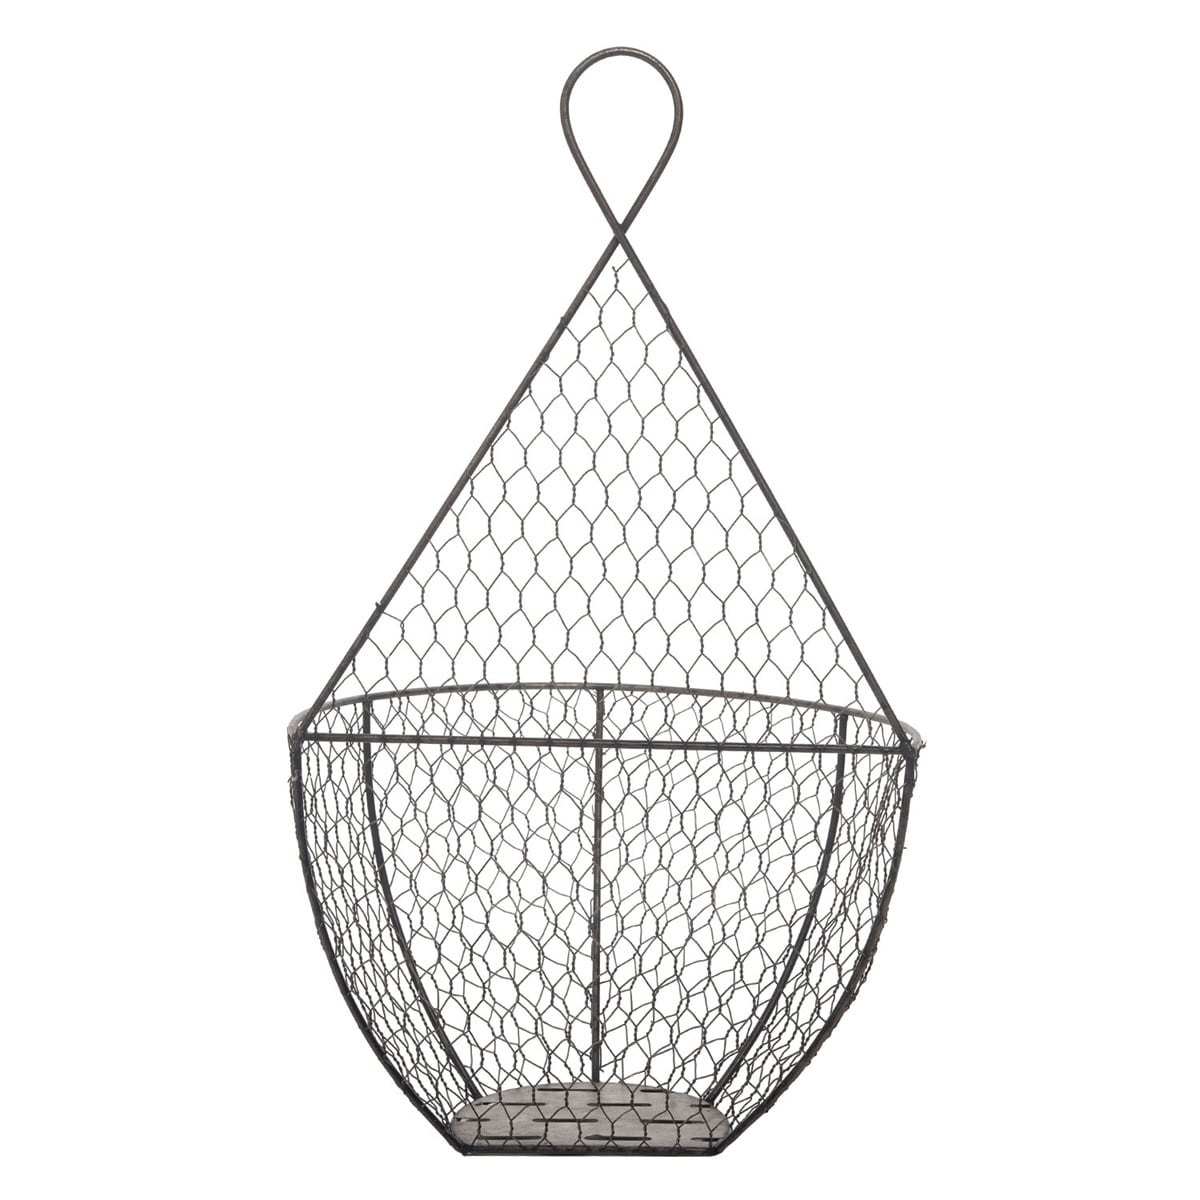 Foreside Home Garden Set Of 2 Metal Wire Hanging Wall Baskets 8 07x12 2x20 25 Overstock 25978620